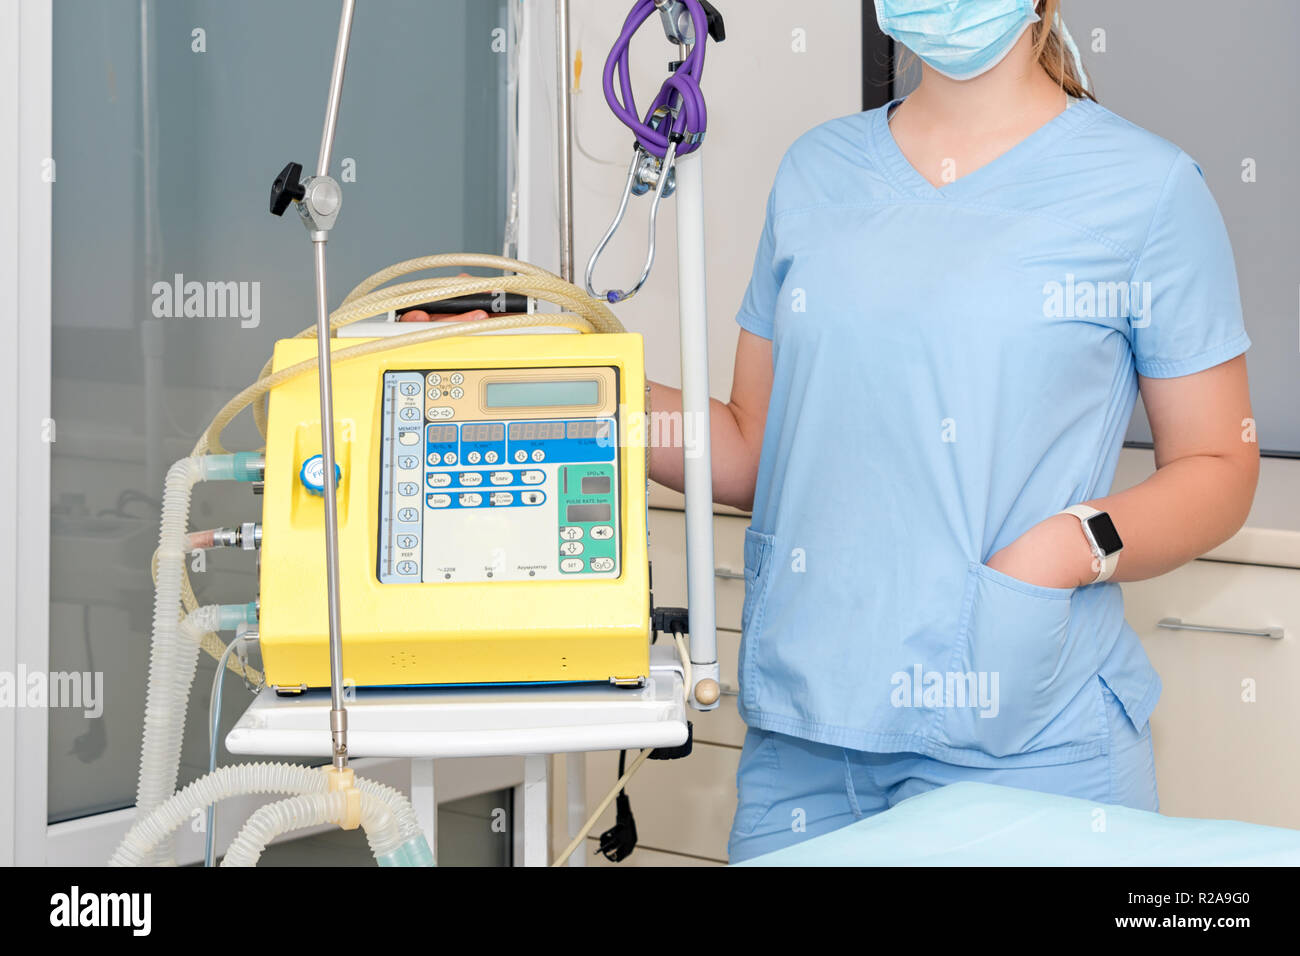 Anesthesiologist with anesthesiology device in operating room. Surgery assistant. - Stock Image